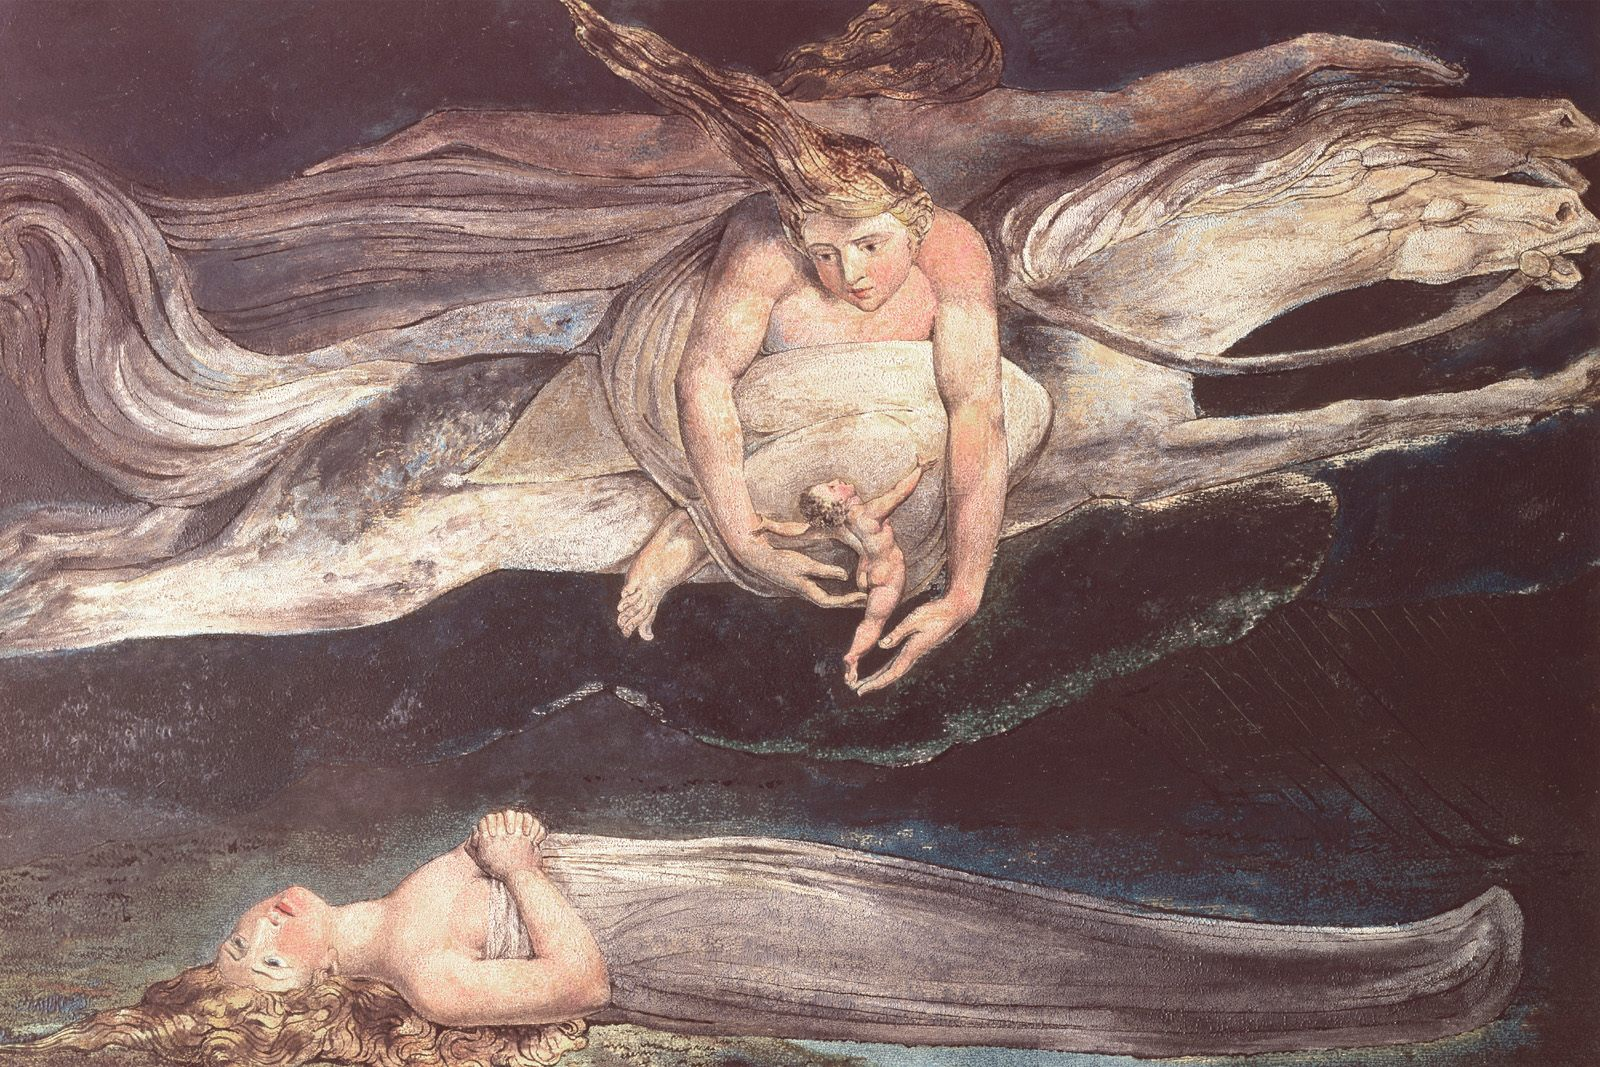 """dante divine comedy essays Divine comedy essay divine comedy essay intelligence (encarta, 1) between the years of 1308 and 1321, dante wrote the epic poem, """"the divine comedy,"""" which."""